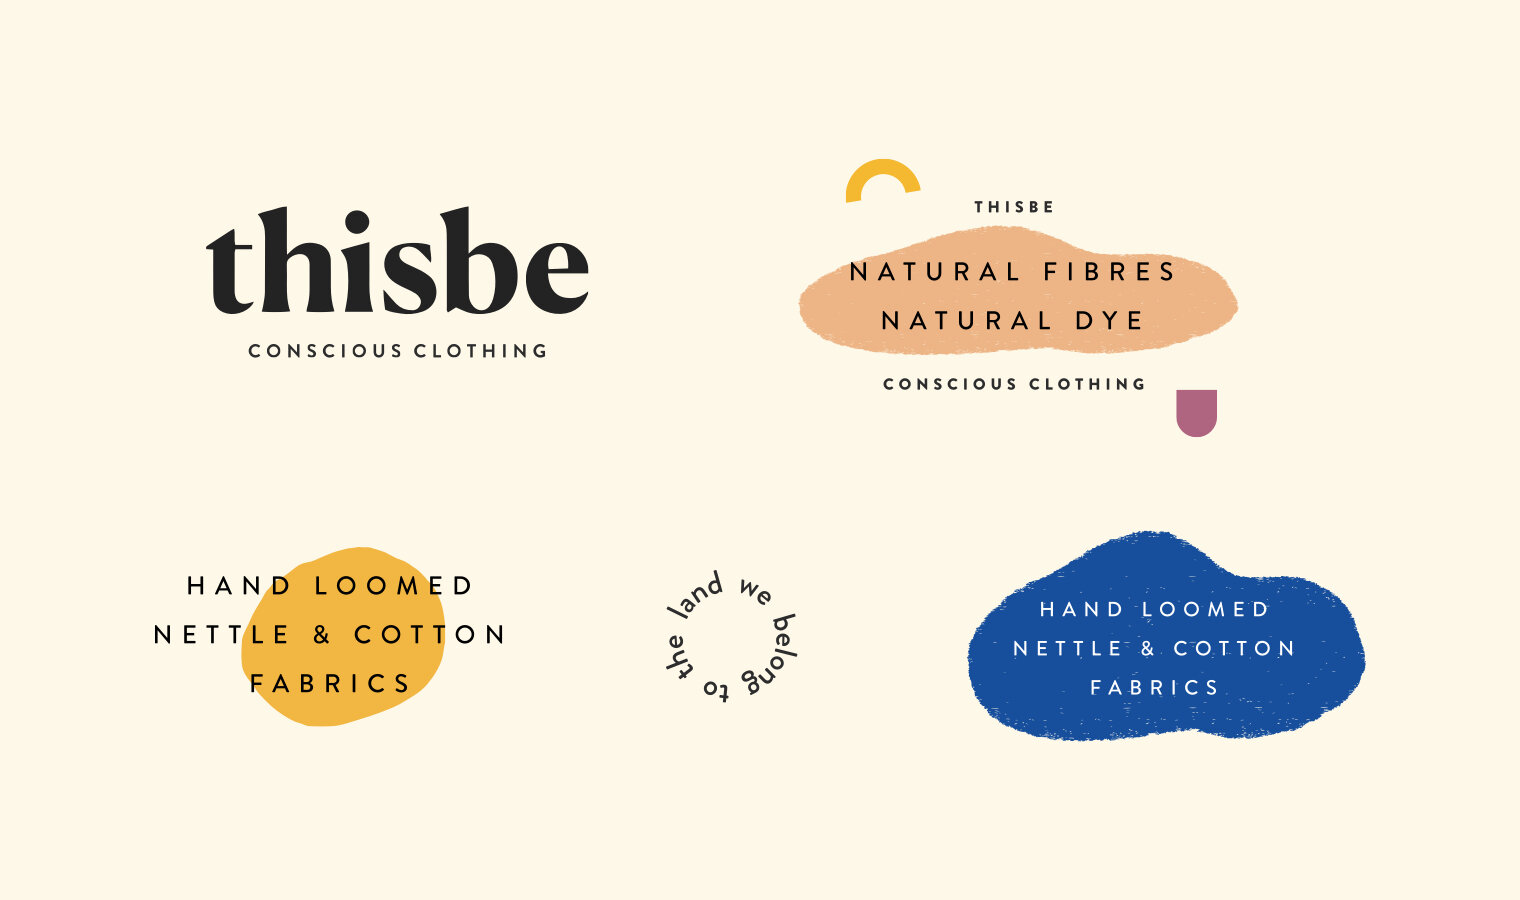 colourful-pastel-logo-suite-conscious-fashion-ethical-design-agency.jpg